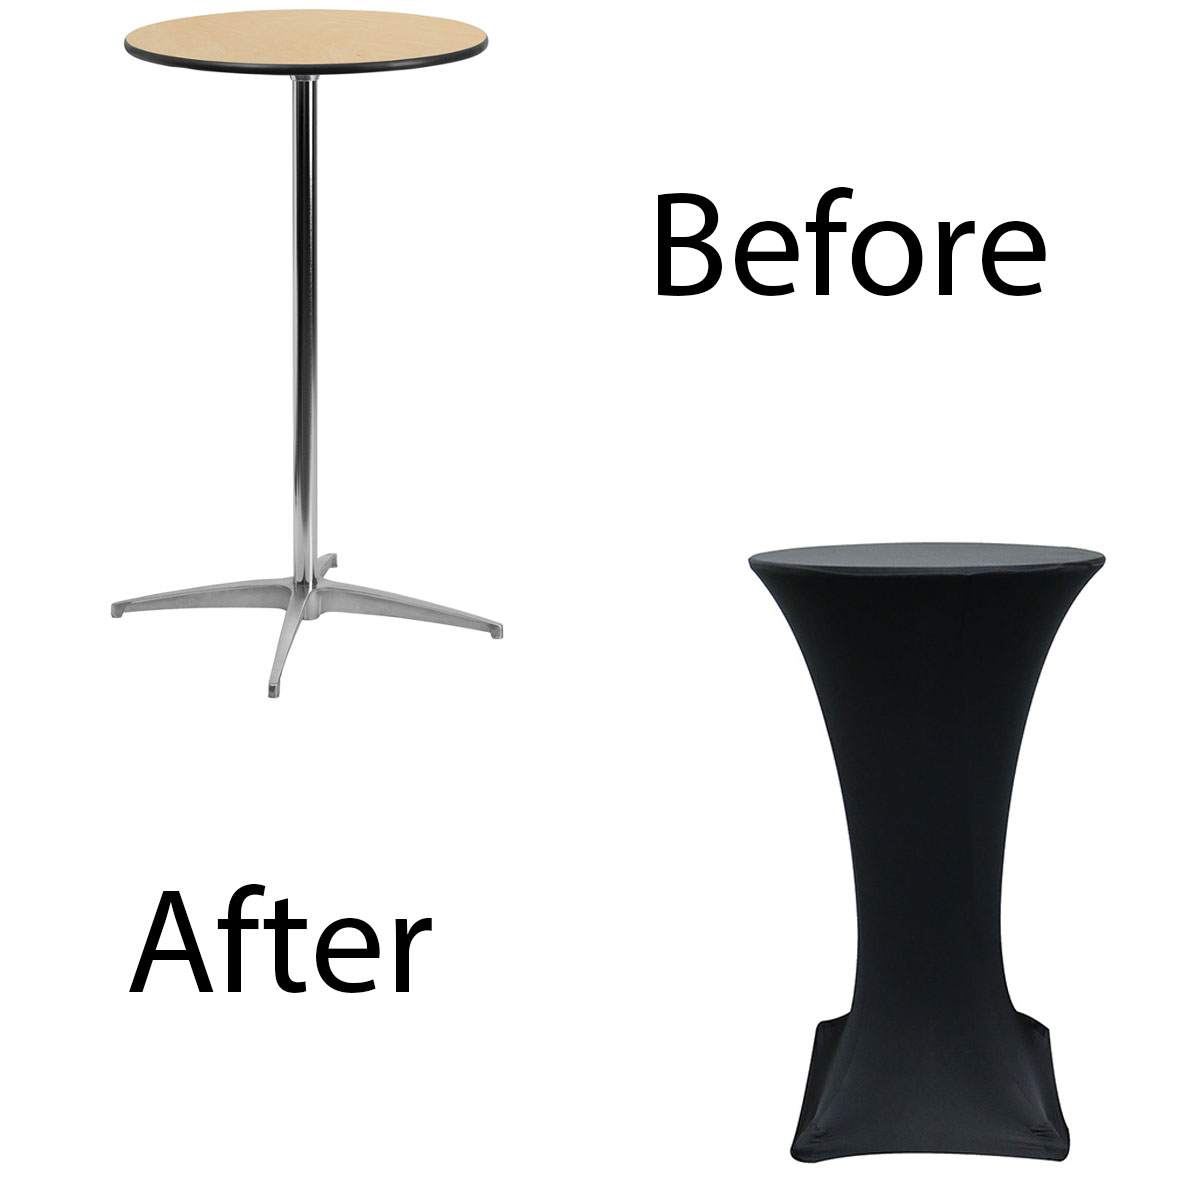 24-inch-highboy-cocktail-spandex-table-covers-black-before-after.jpg